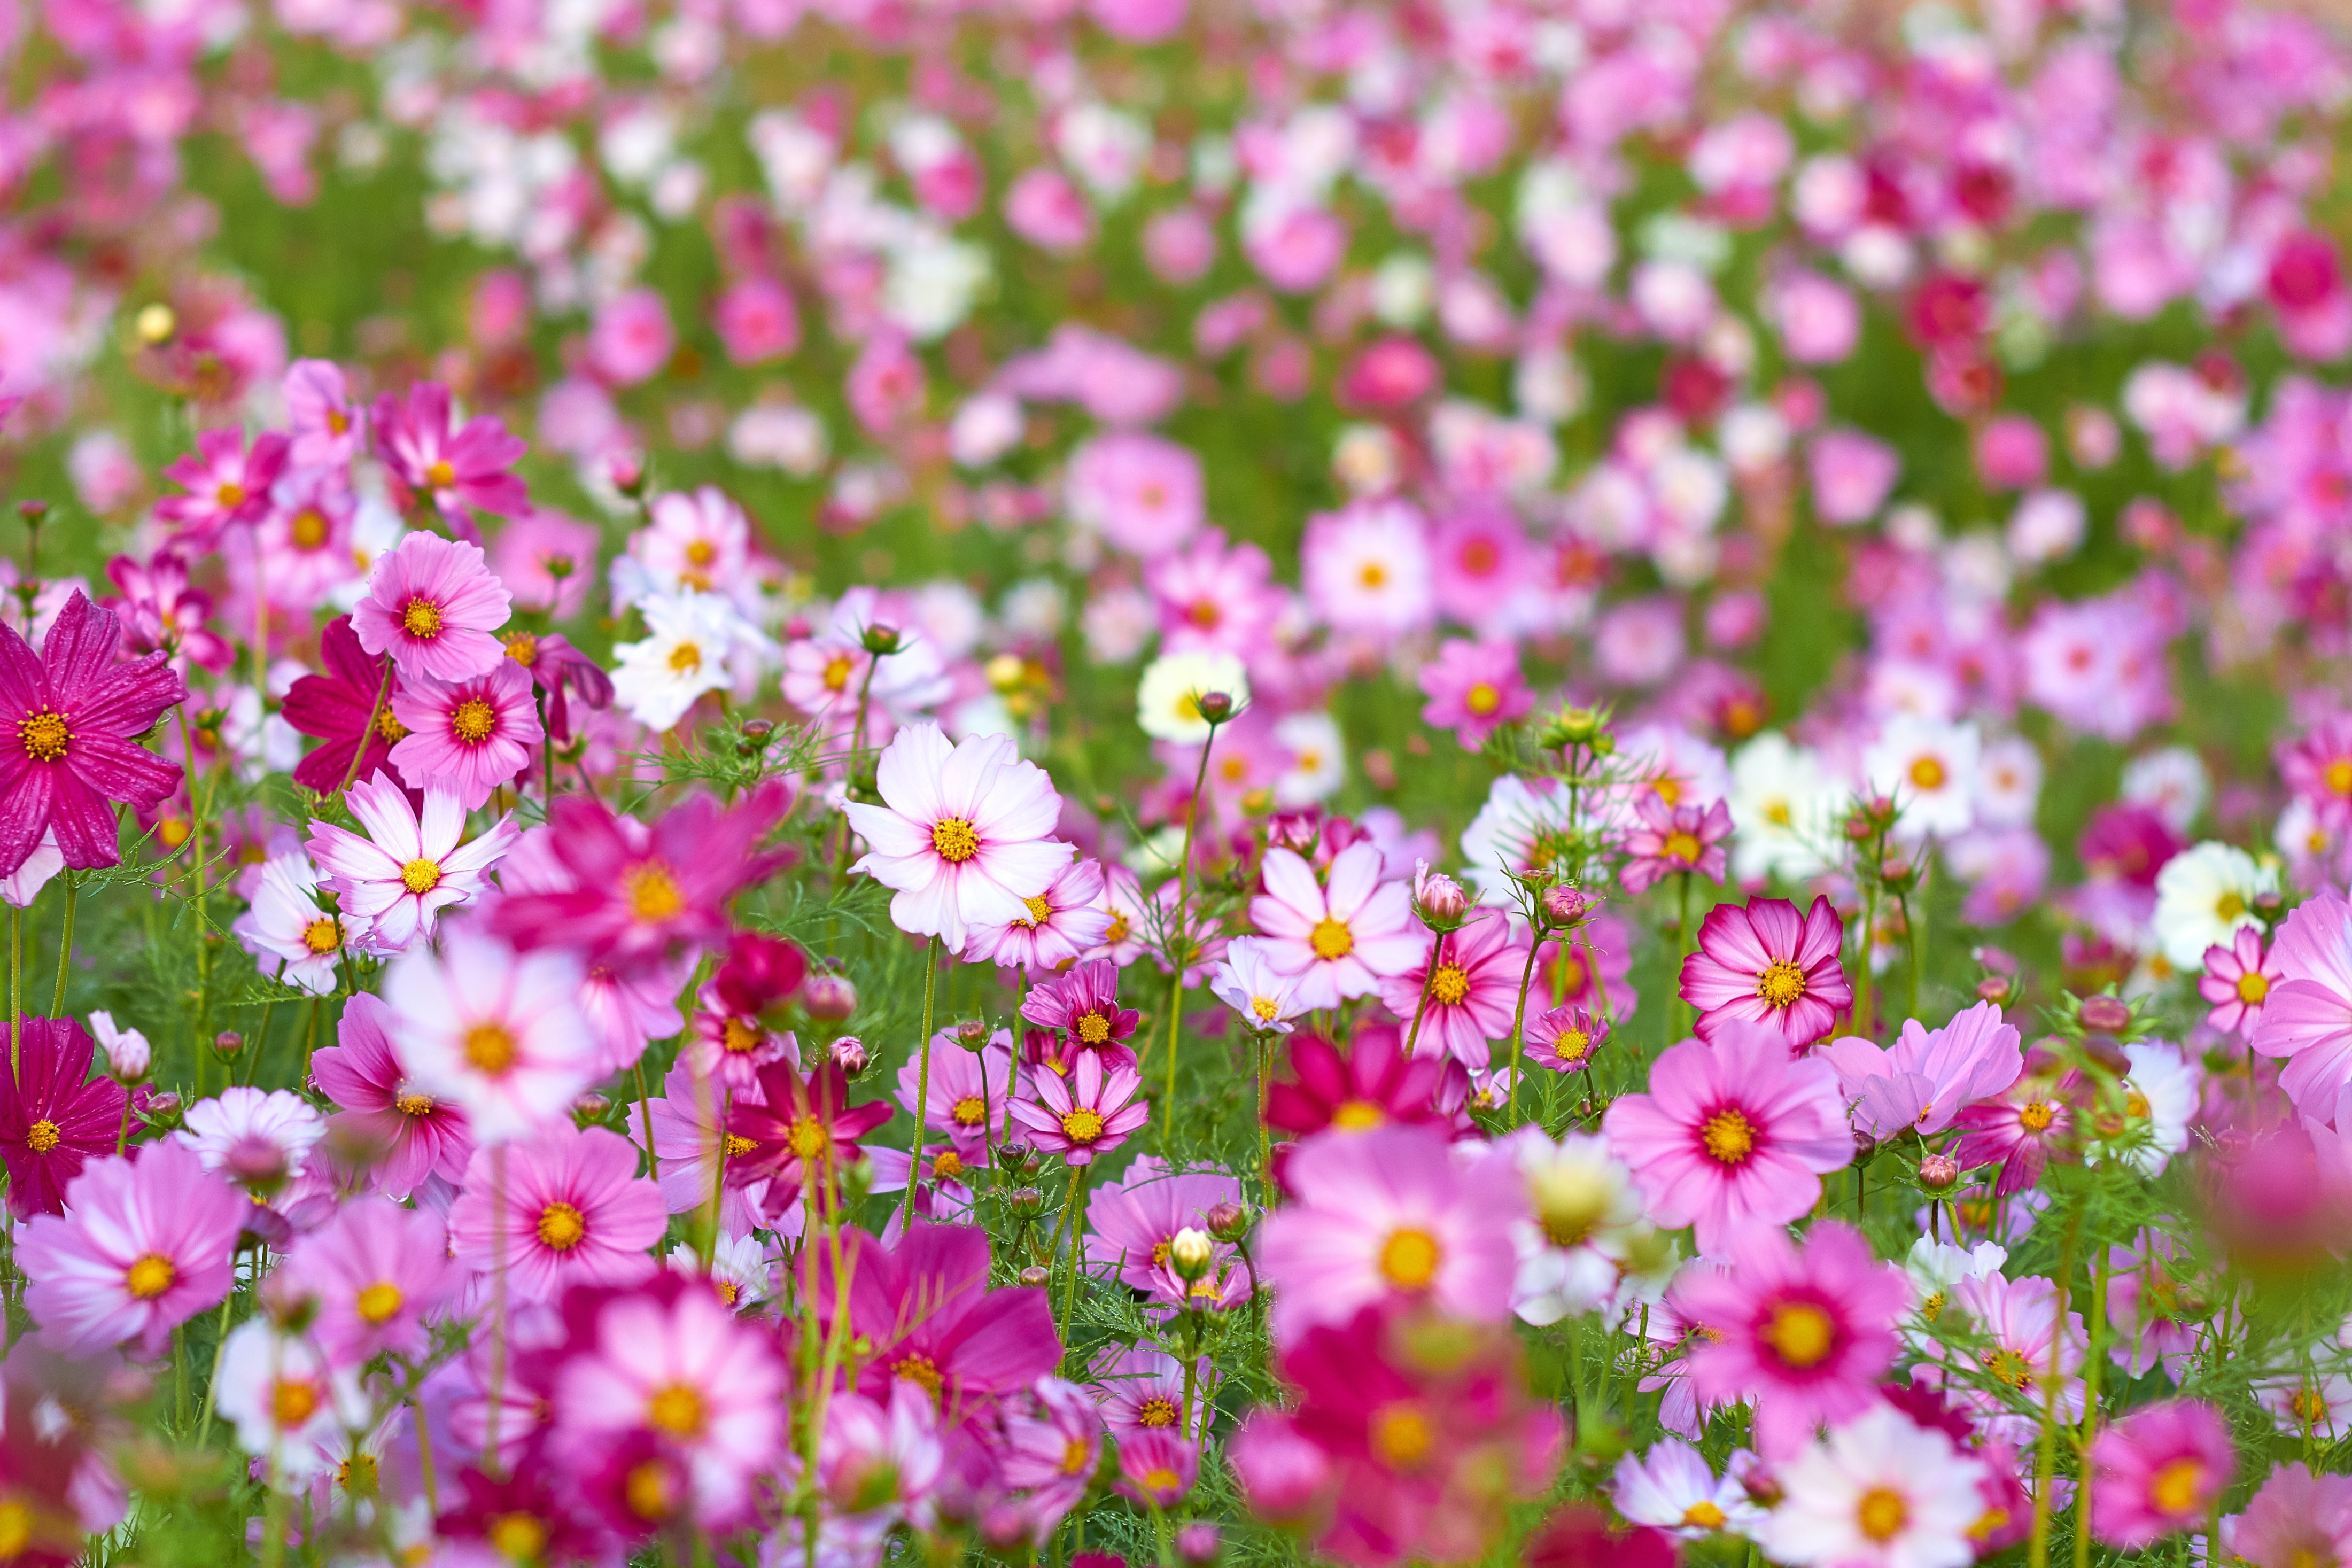 pink and white flower field